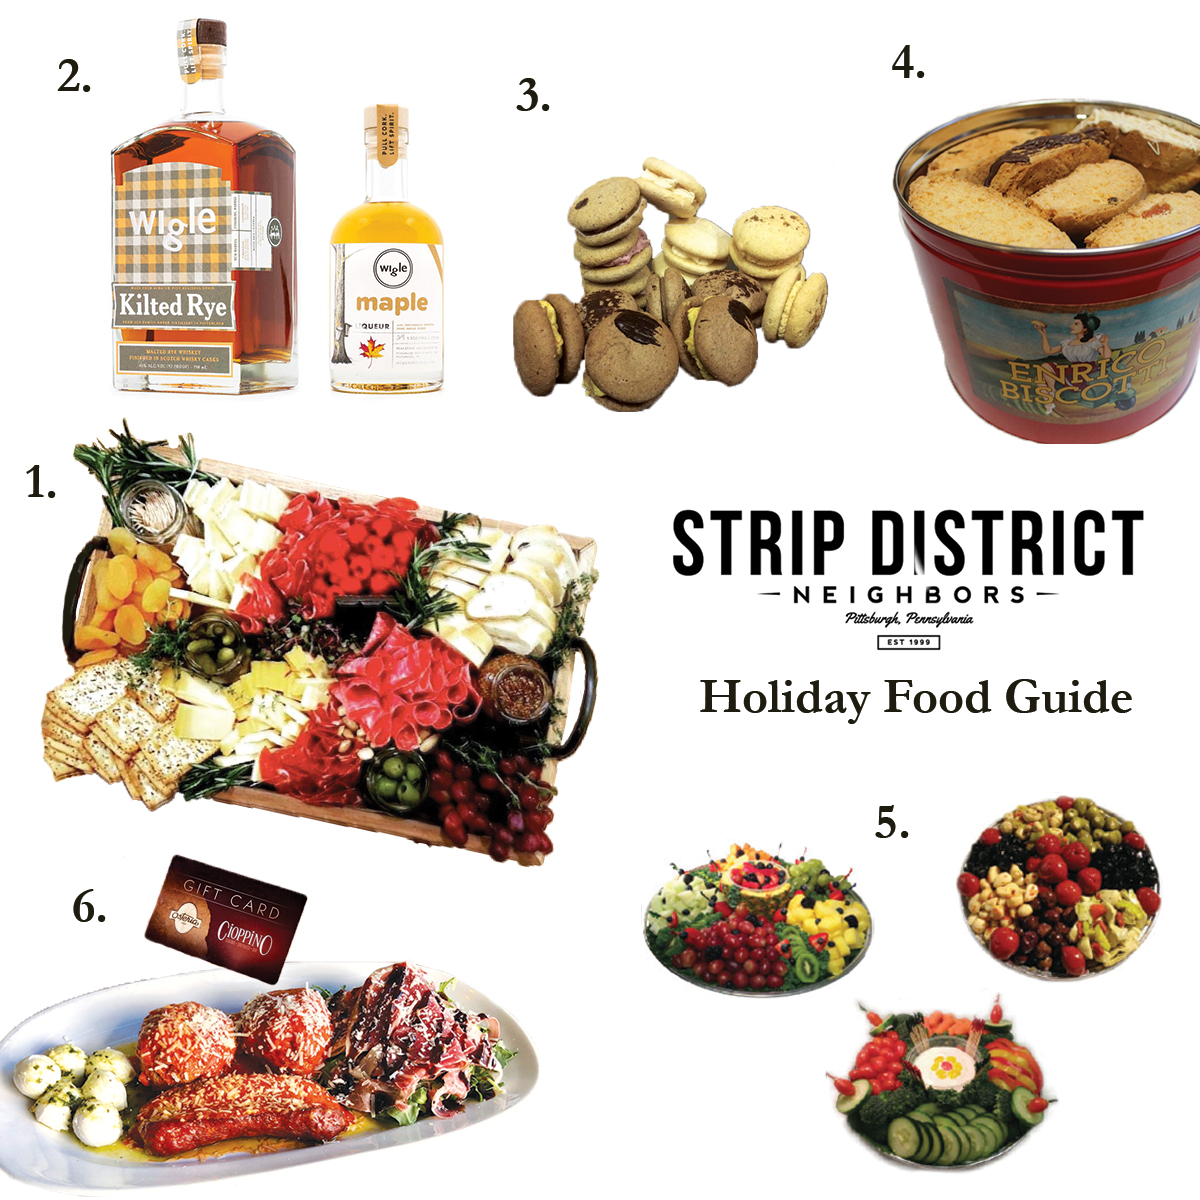 Strip District Holiday Food Guide.jpg